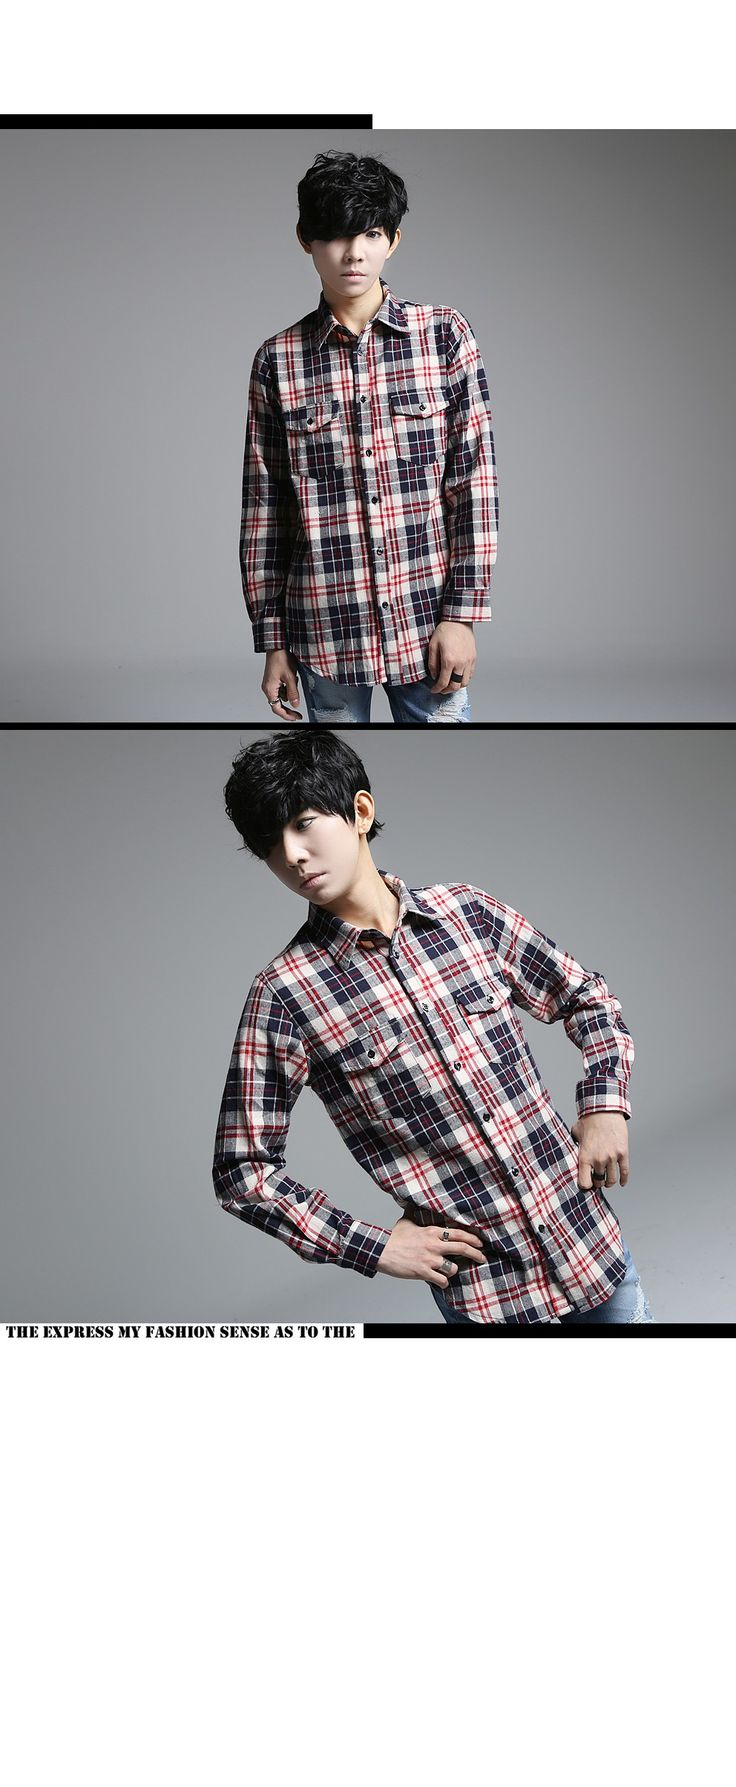 K-POP Men's Fashion Style Store [TOMSYTLE]  Les artists NB / Size : FREE / Price : 61.31 USD #dailylook #dailyfashion #casuallook #tops #shirt #TOMSTYLE #OOTD  http://en.tomstyle.net/